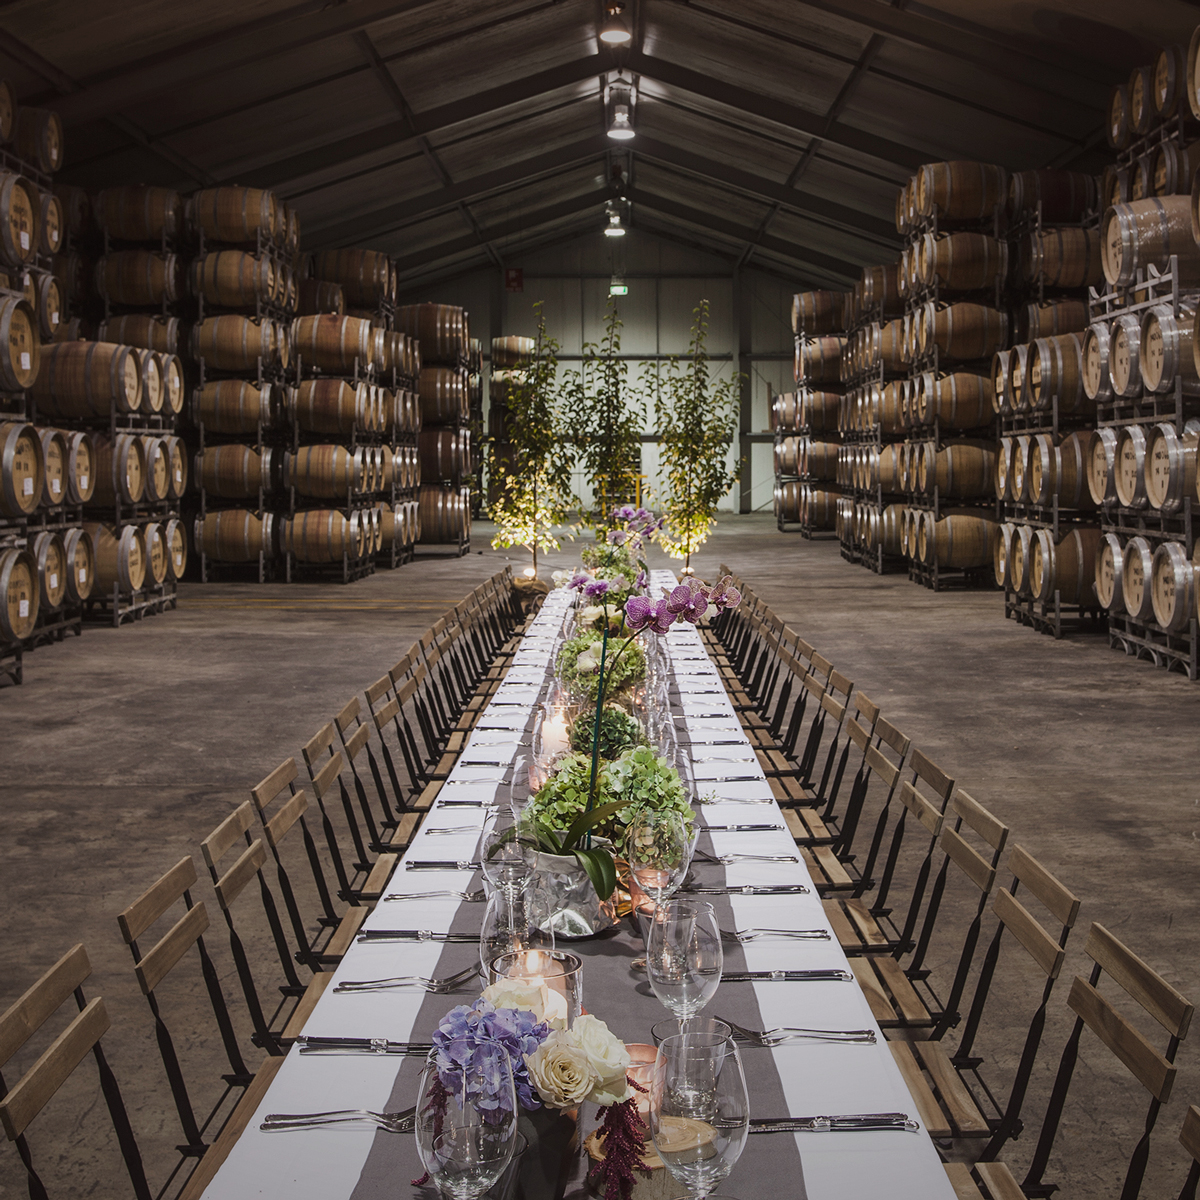 St. Hakea winery wedding barrel room